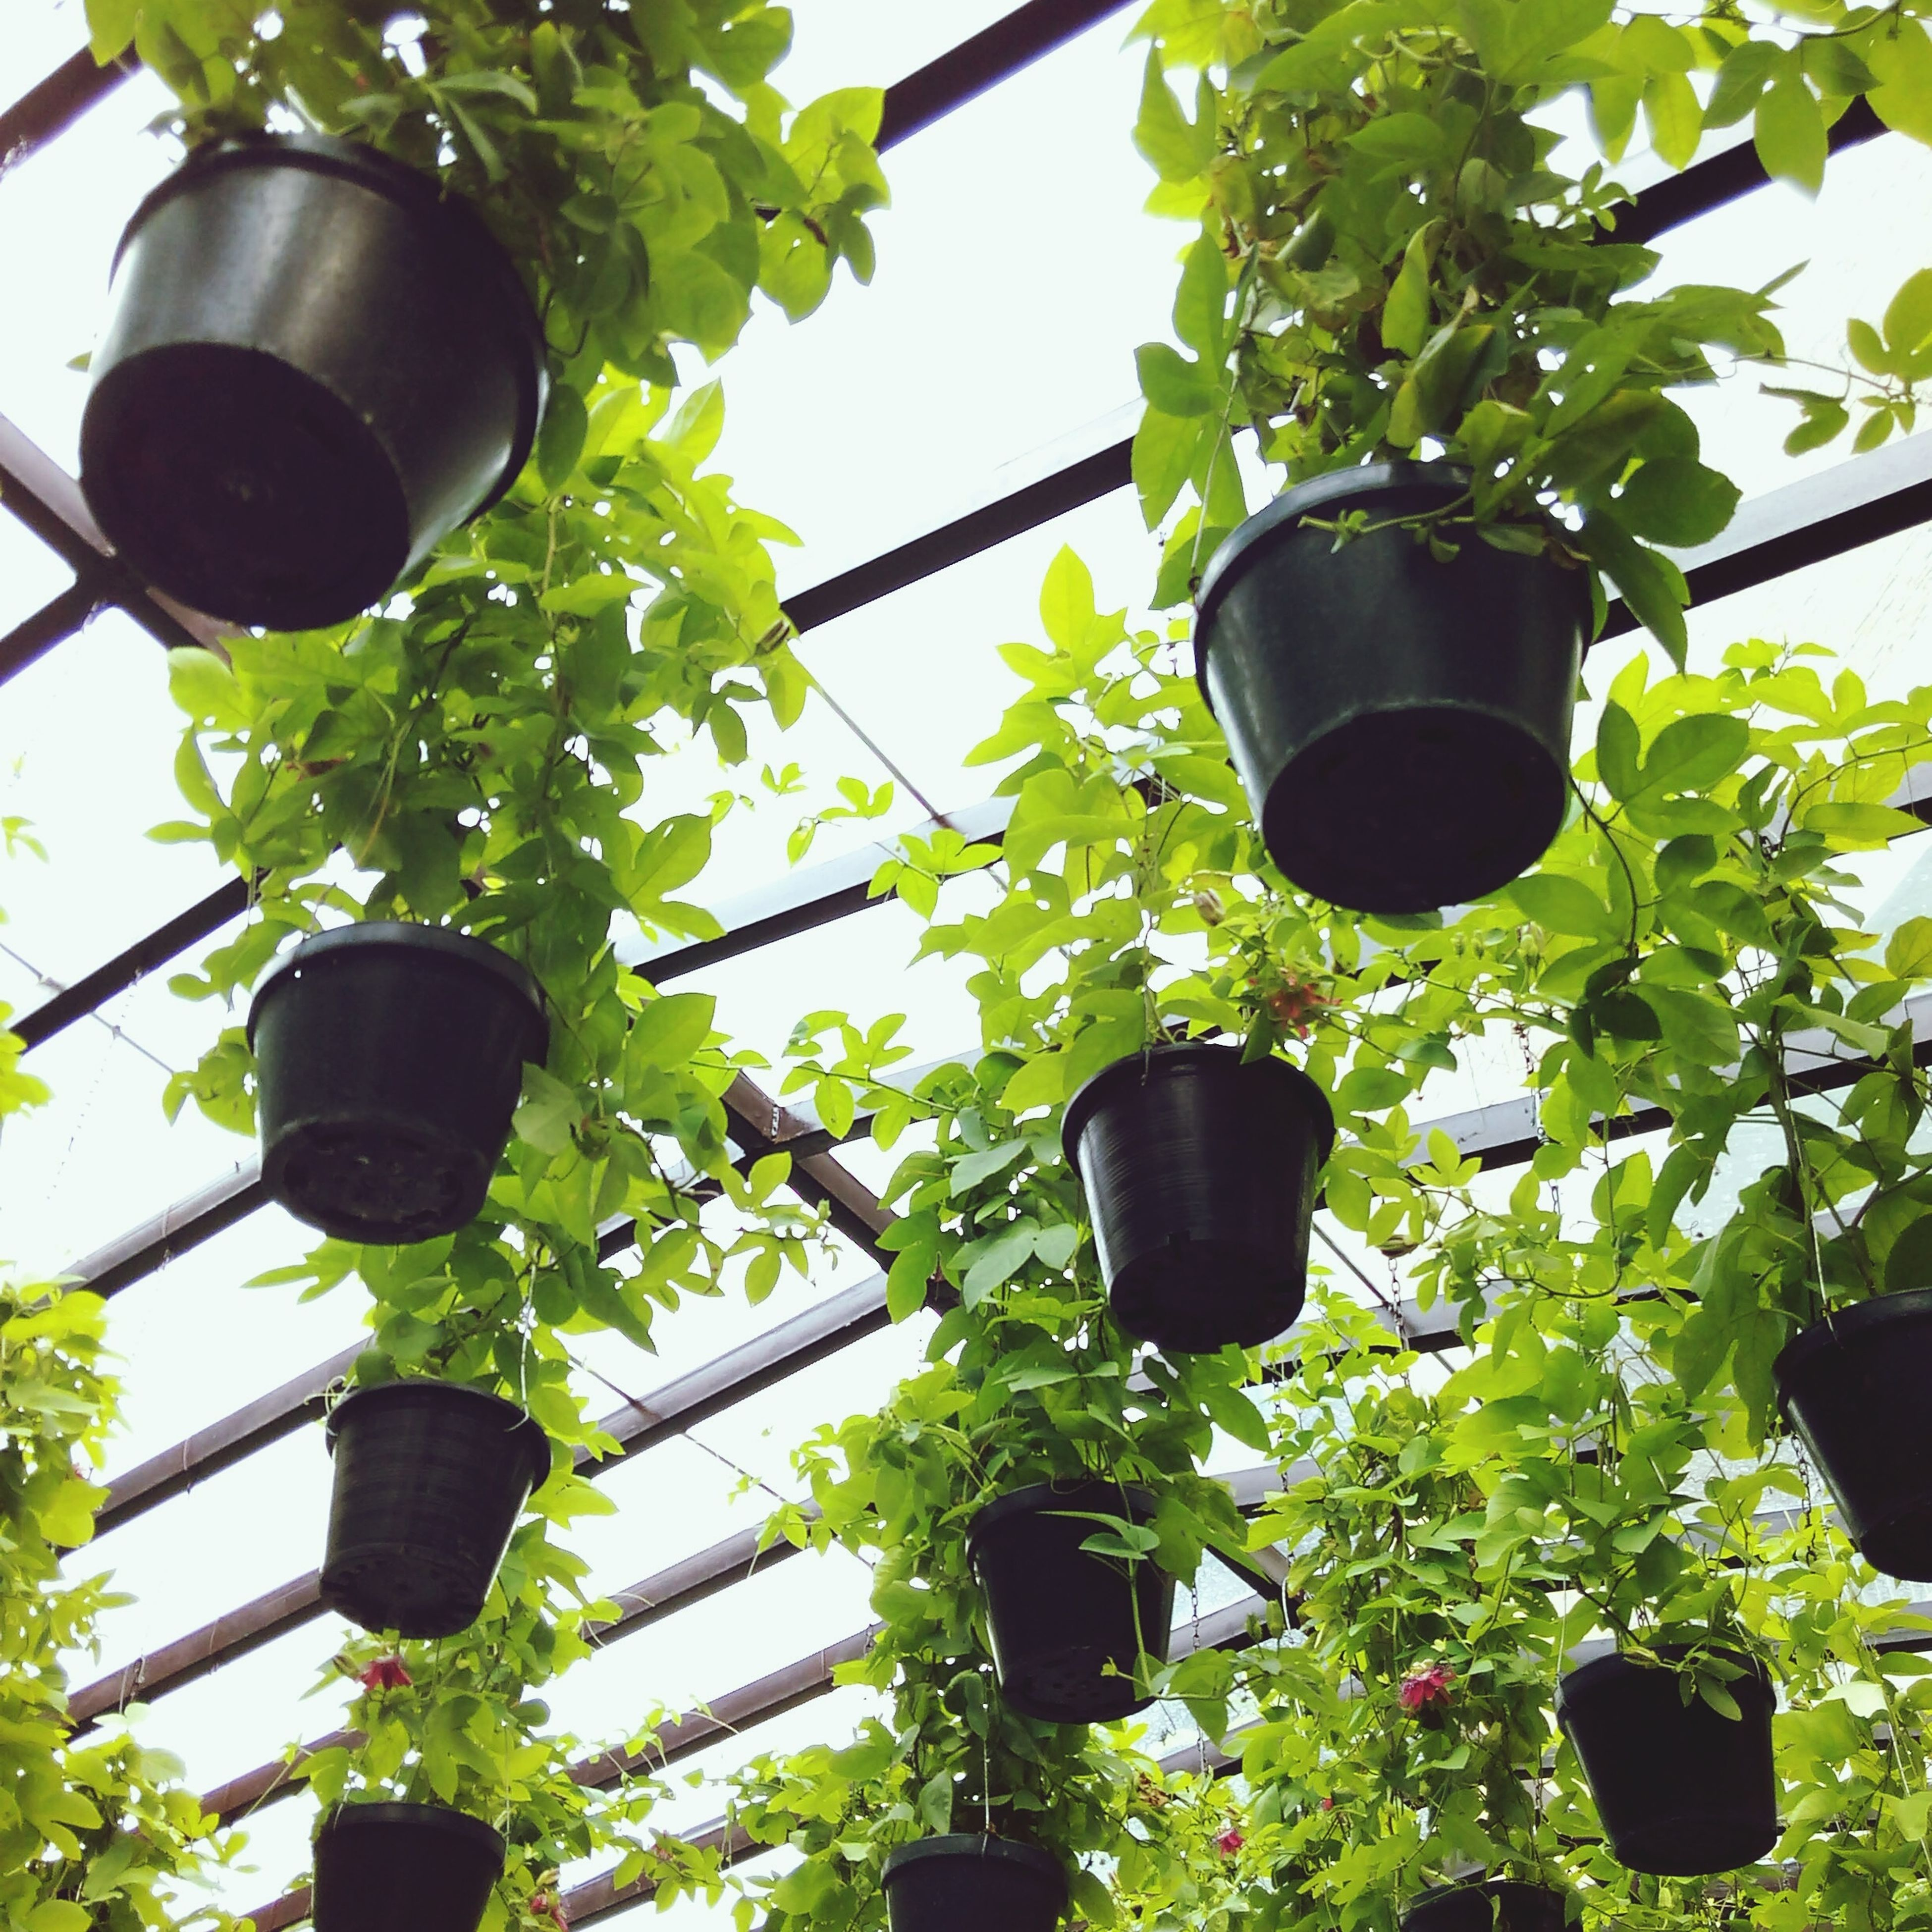 low angle view, tree, growth, leaf, hanging, lighting equipment, plant, green color, street light, lantern, electricity, day, outdoors, potted plant, nature, branch, metal, built structure, no people, close-up